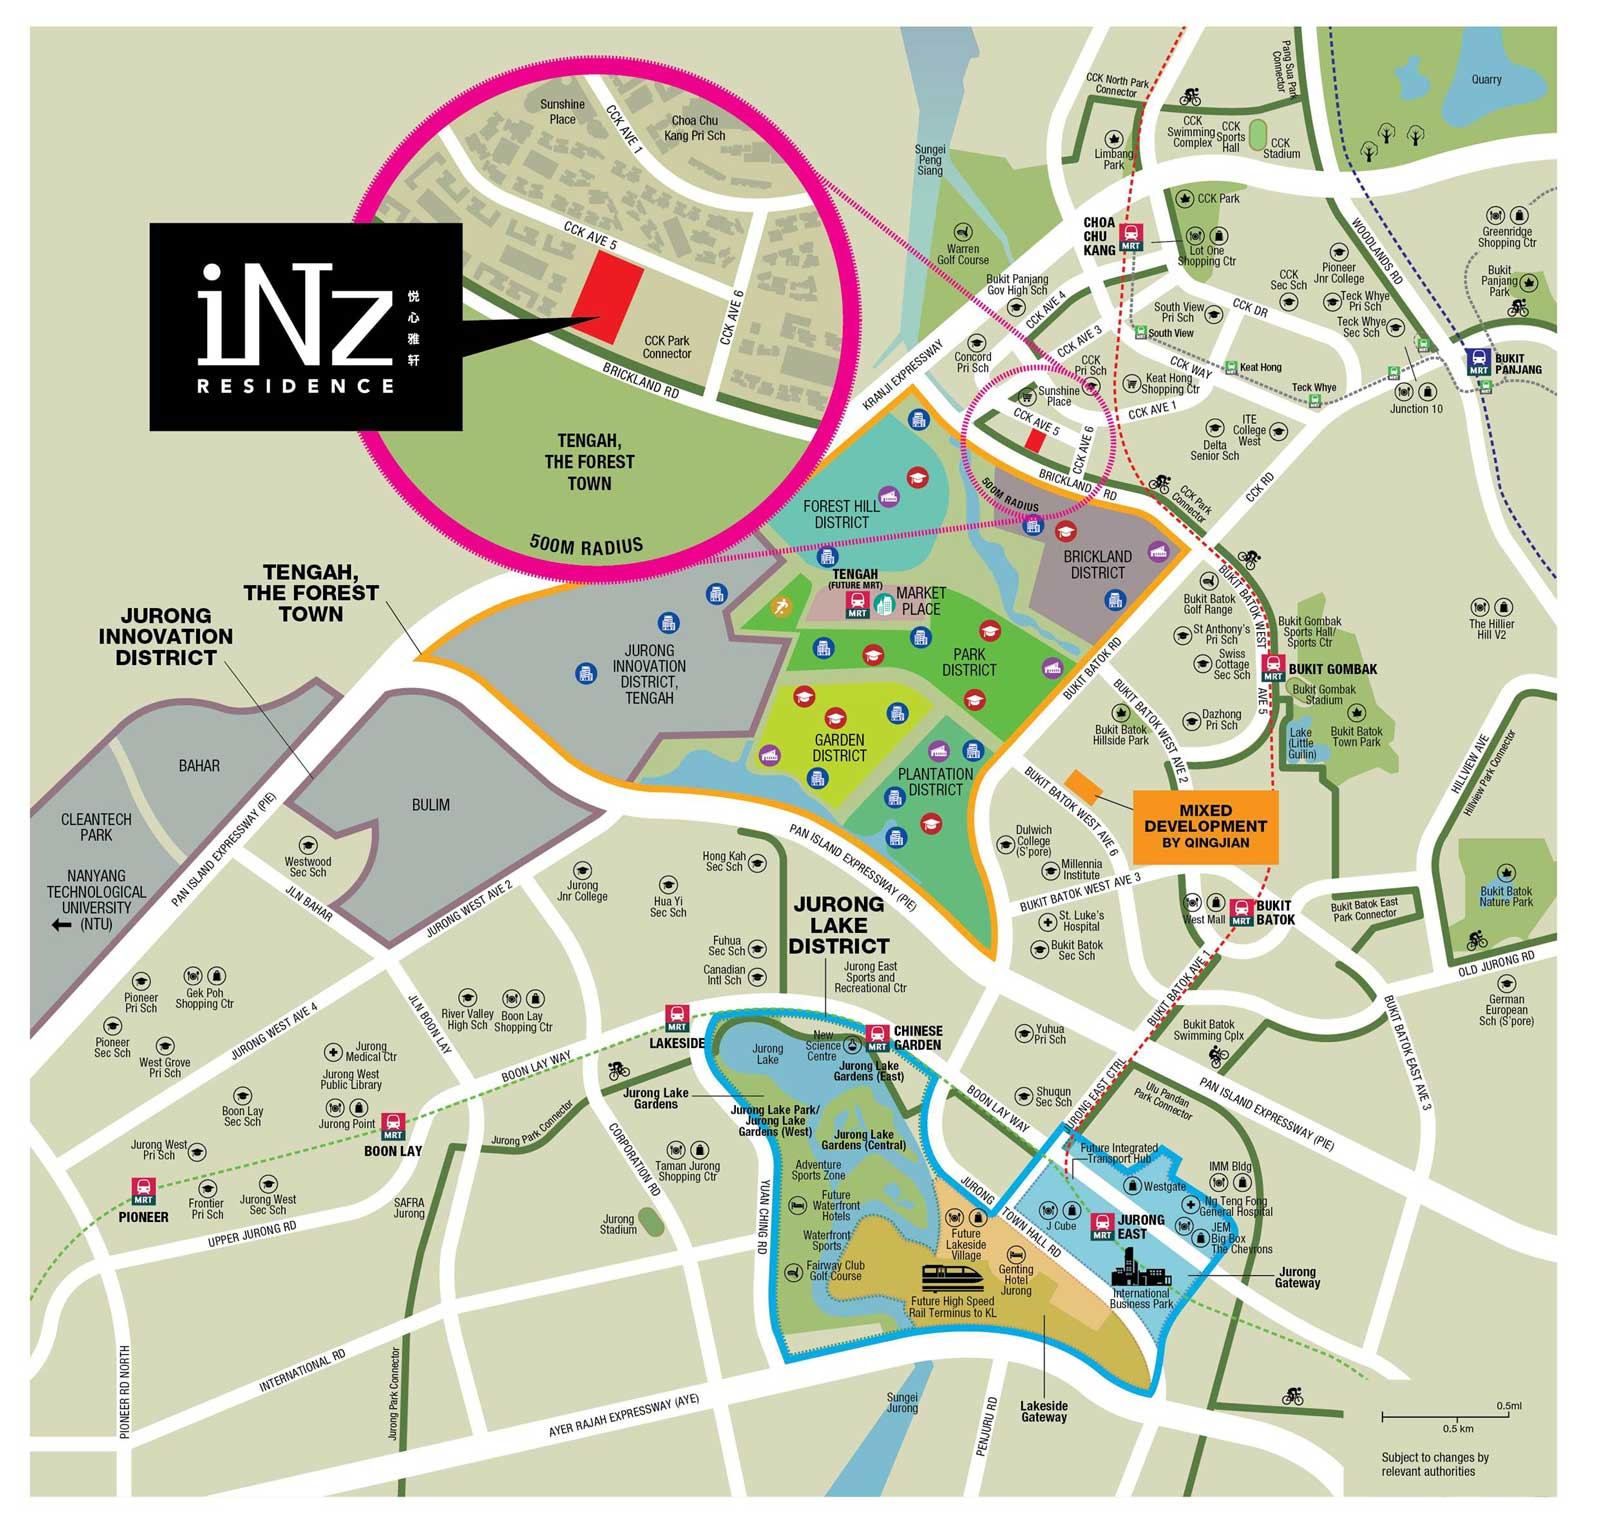 Location Map of iNZ Residences